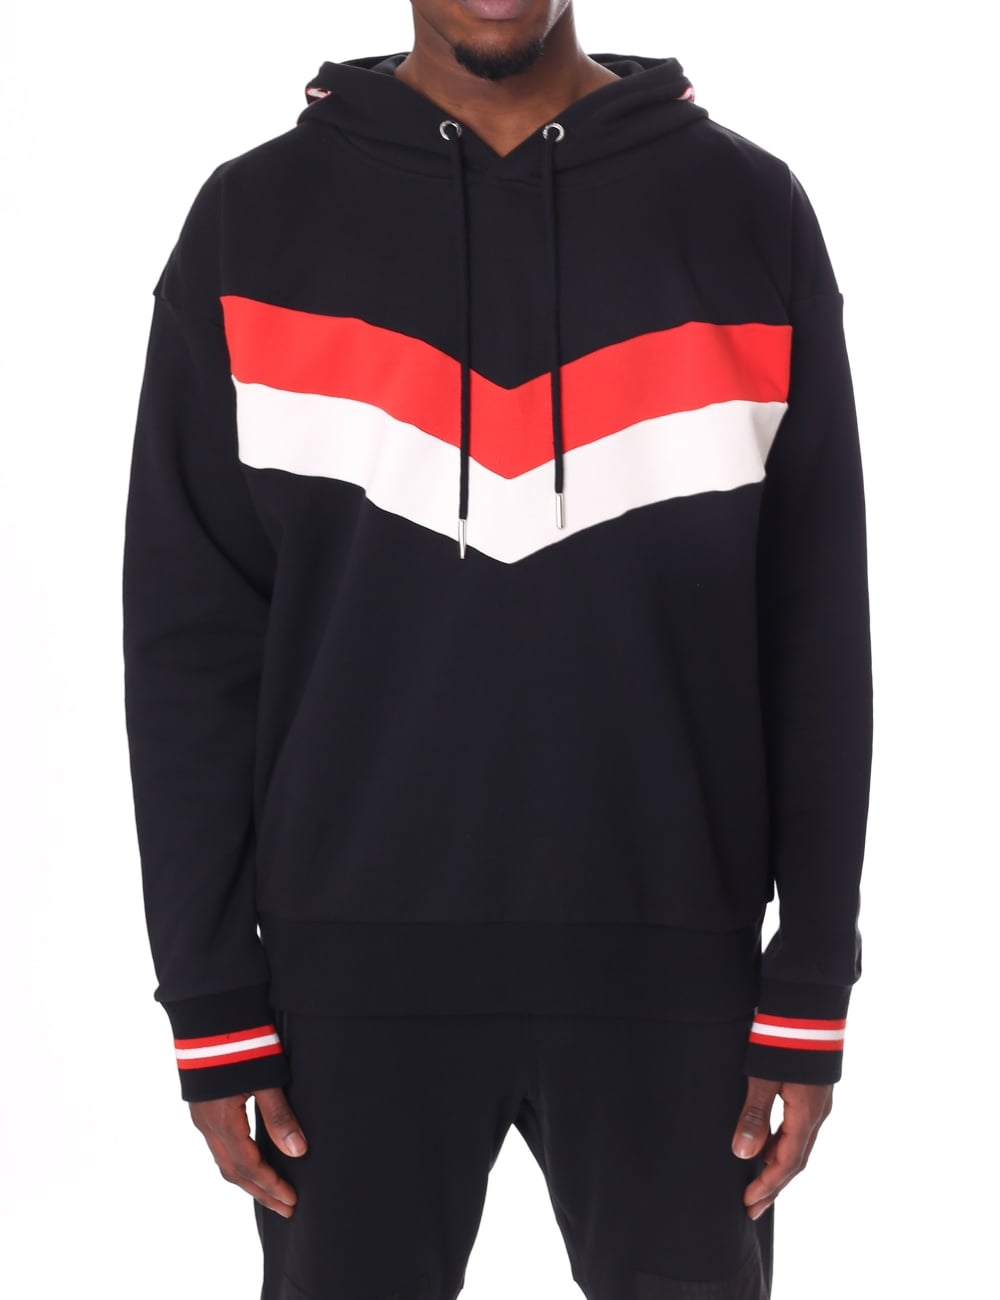 Pullover Hoodie Cut Diesel Men S S Lisa Chevron Pullover Hooded Sweat Top